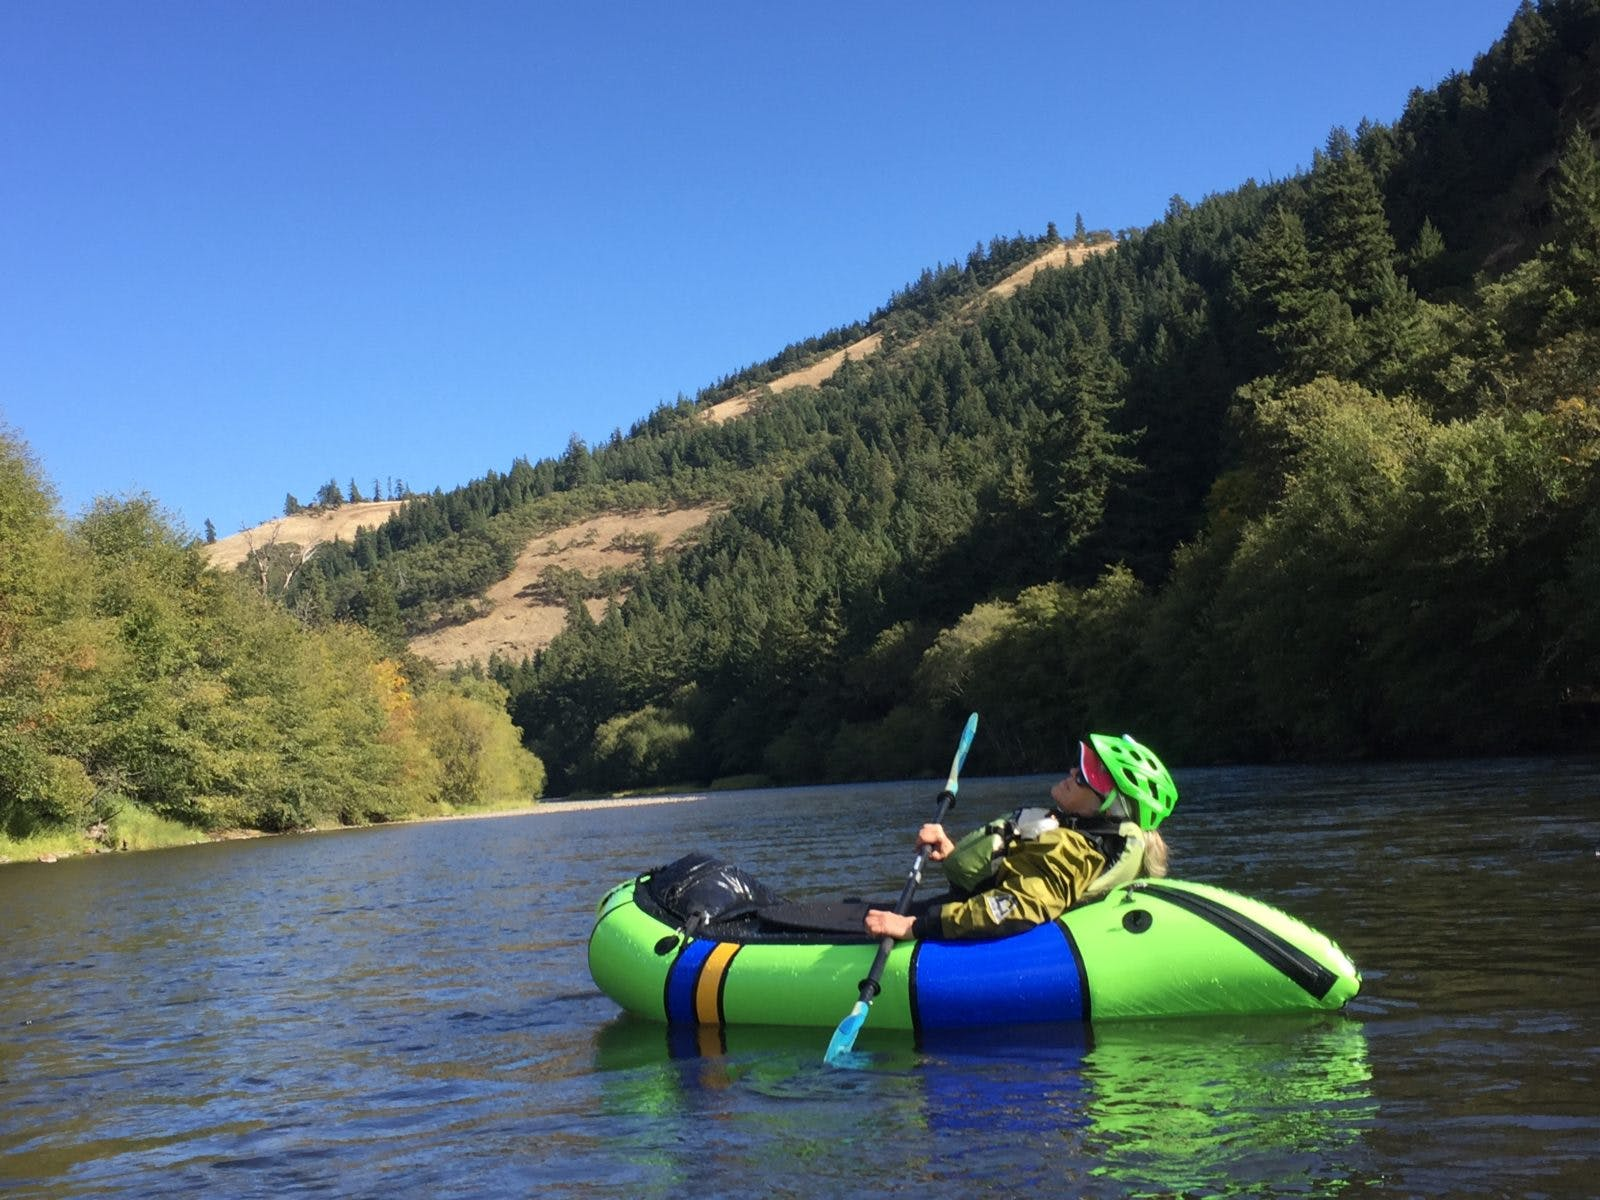 Soaking it in while she can – Cathy (our Ops Director's mom) takes advantage of the sun on a relaxing weekend family float down the Klickitat River in Southern Washington.